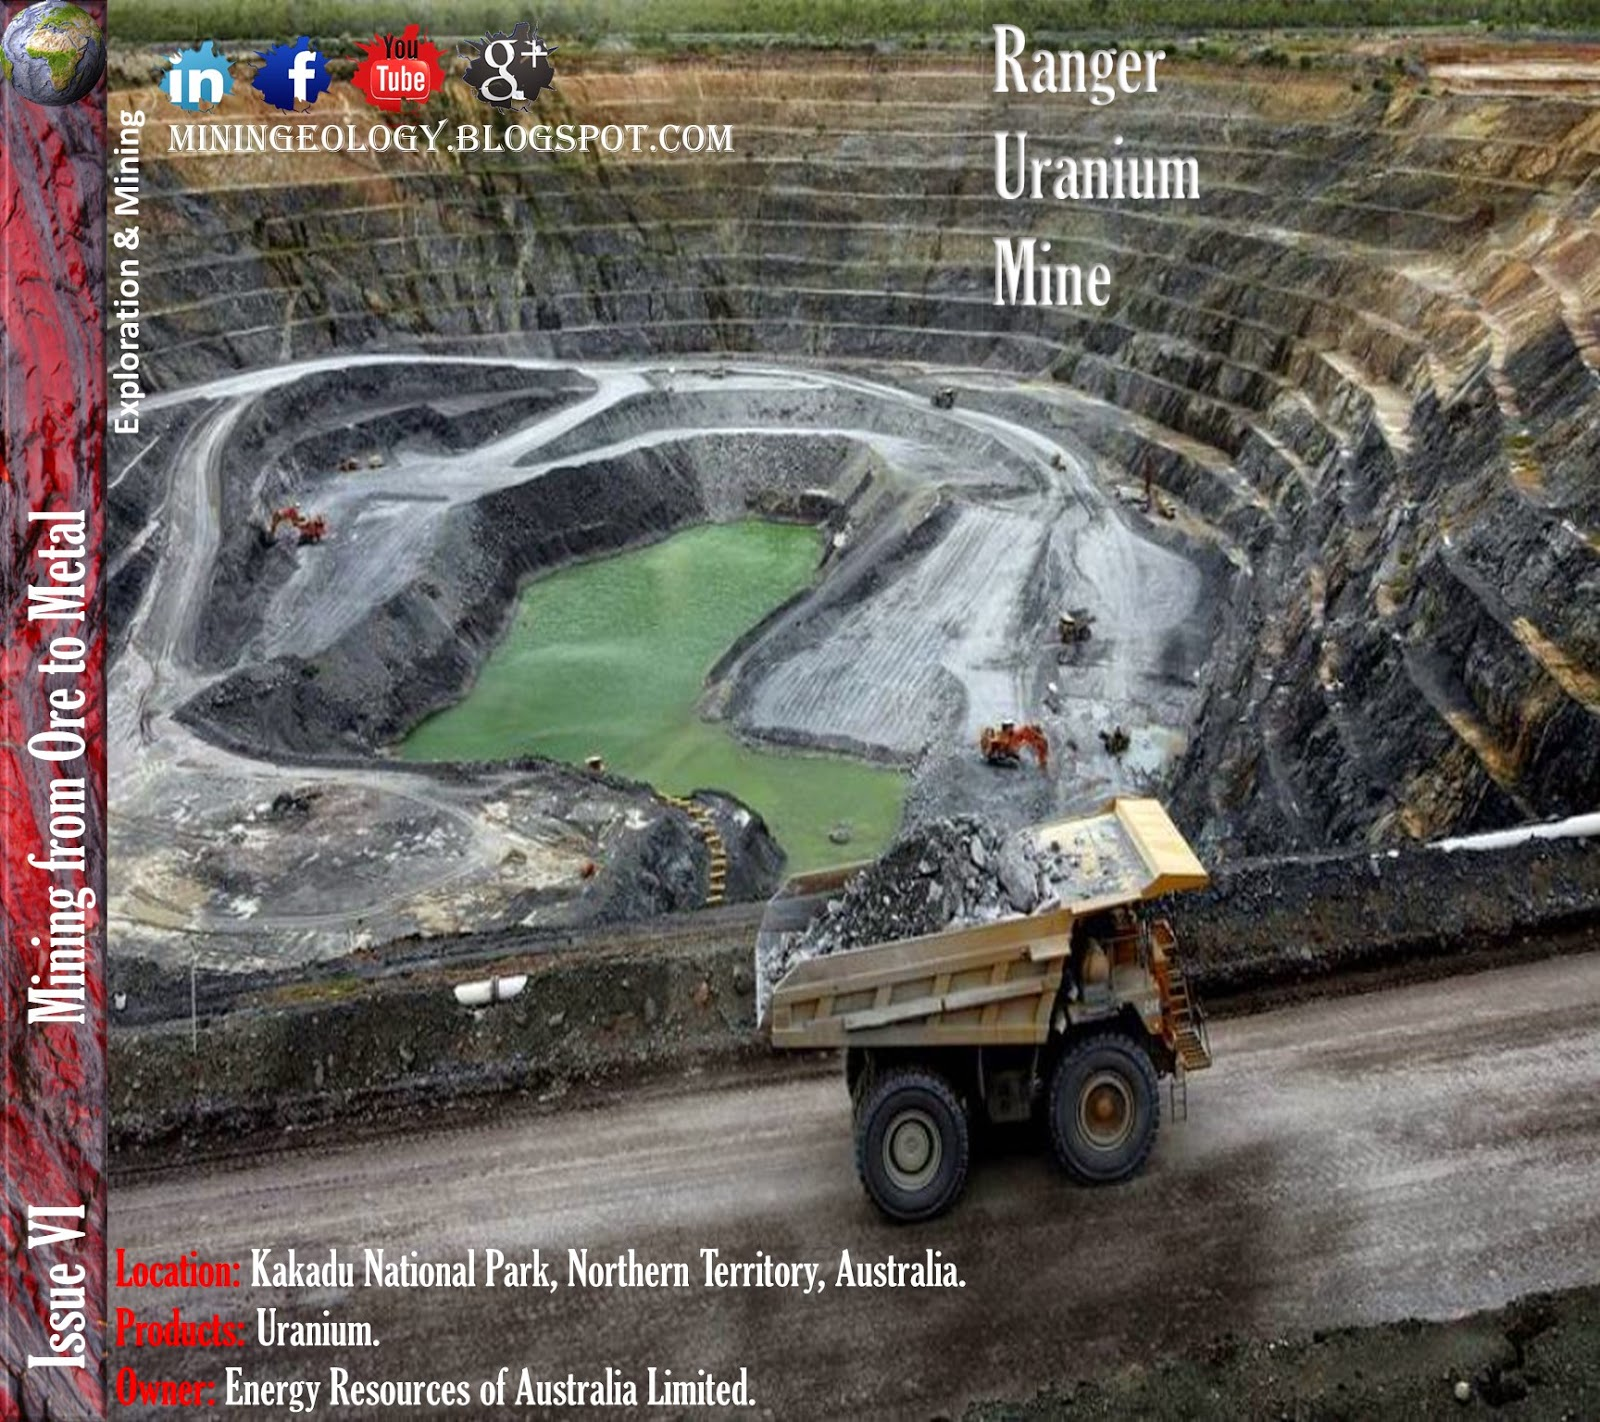 The Ranger Uranium Mine